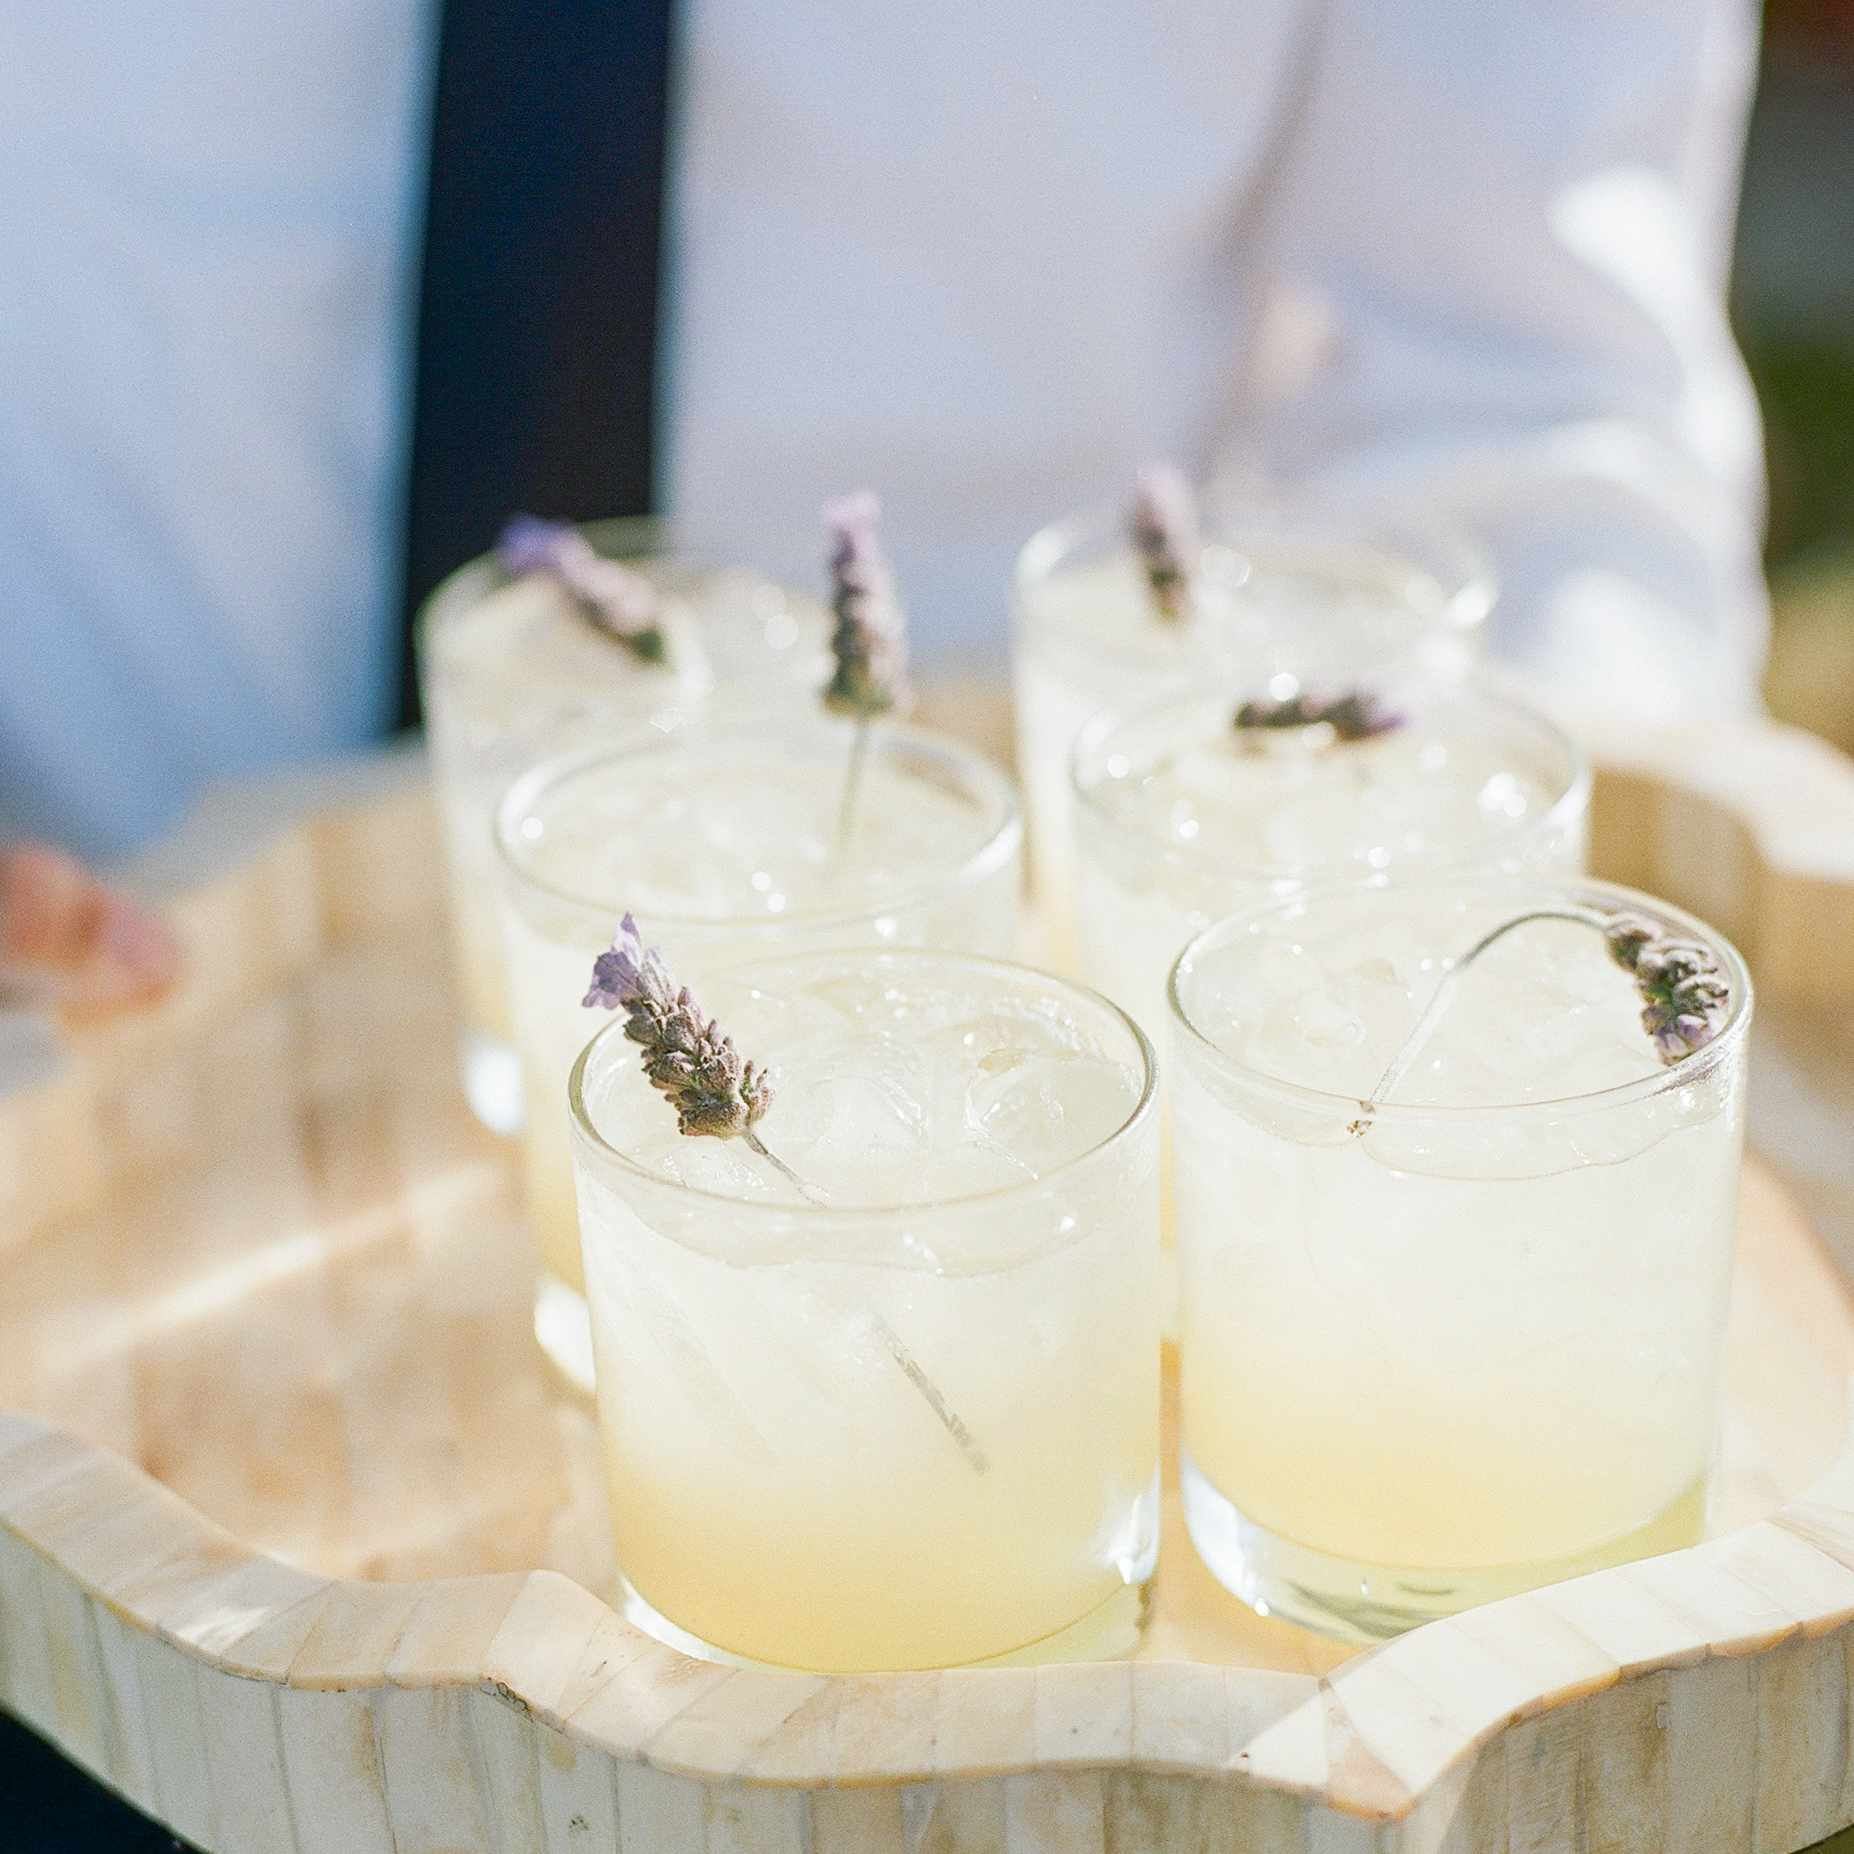 Cocktails With Lavender